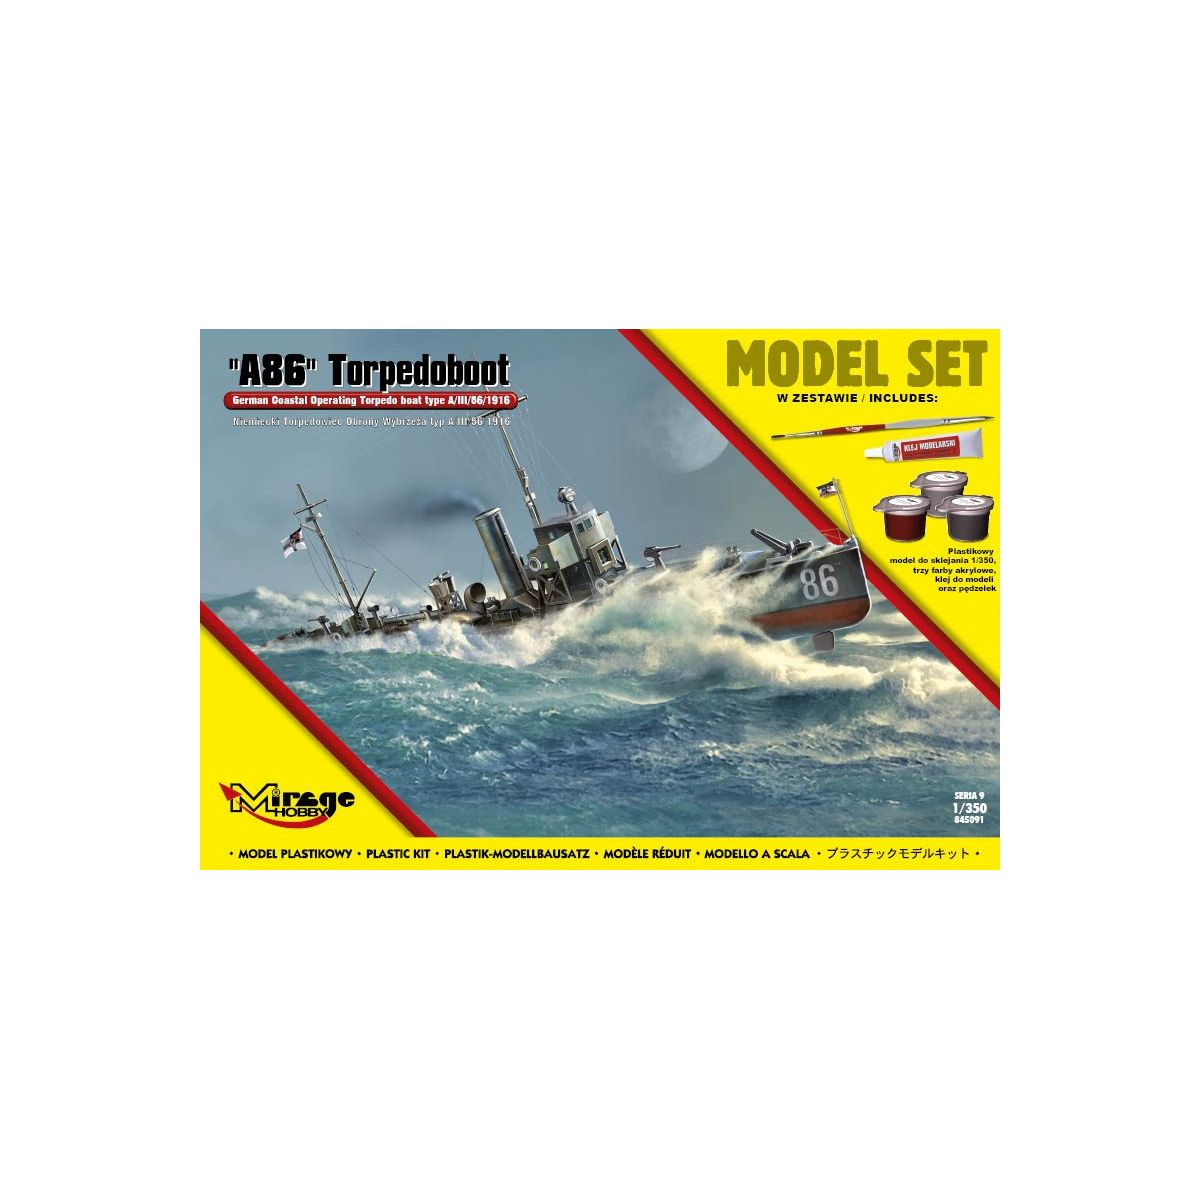 MIRAGE HOBBY MIRA845091 MIRAGE HOBBY 845091 [MODEL SET] A86 GERMAN TORPEDOBOOT 1